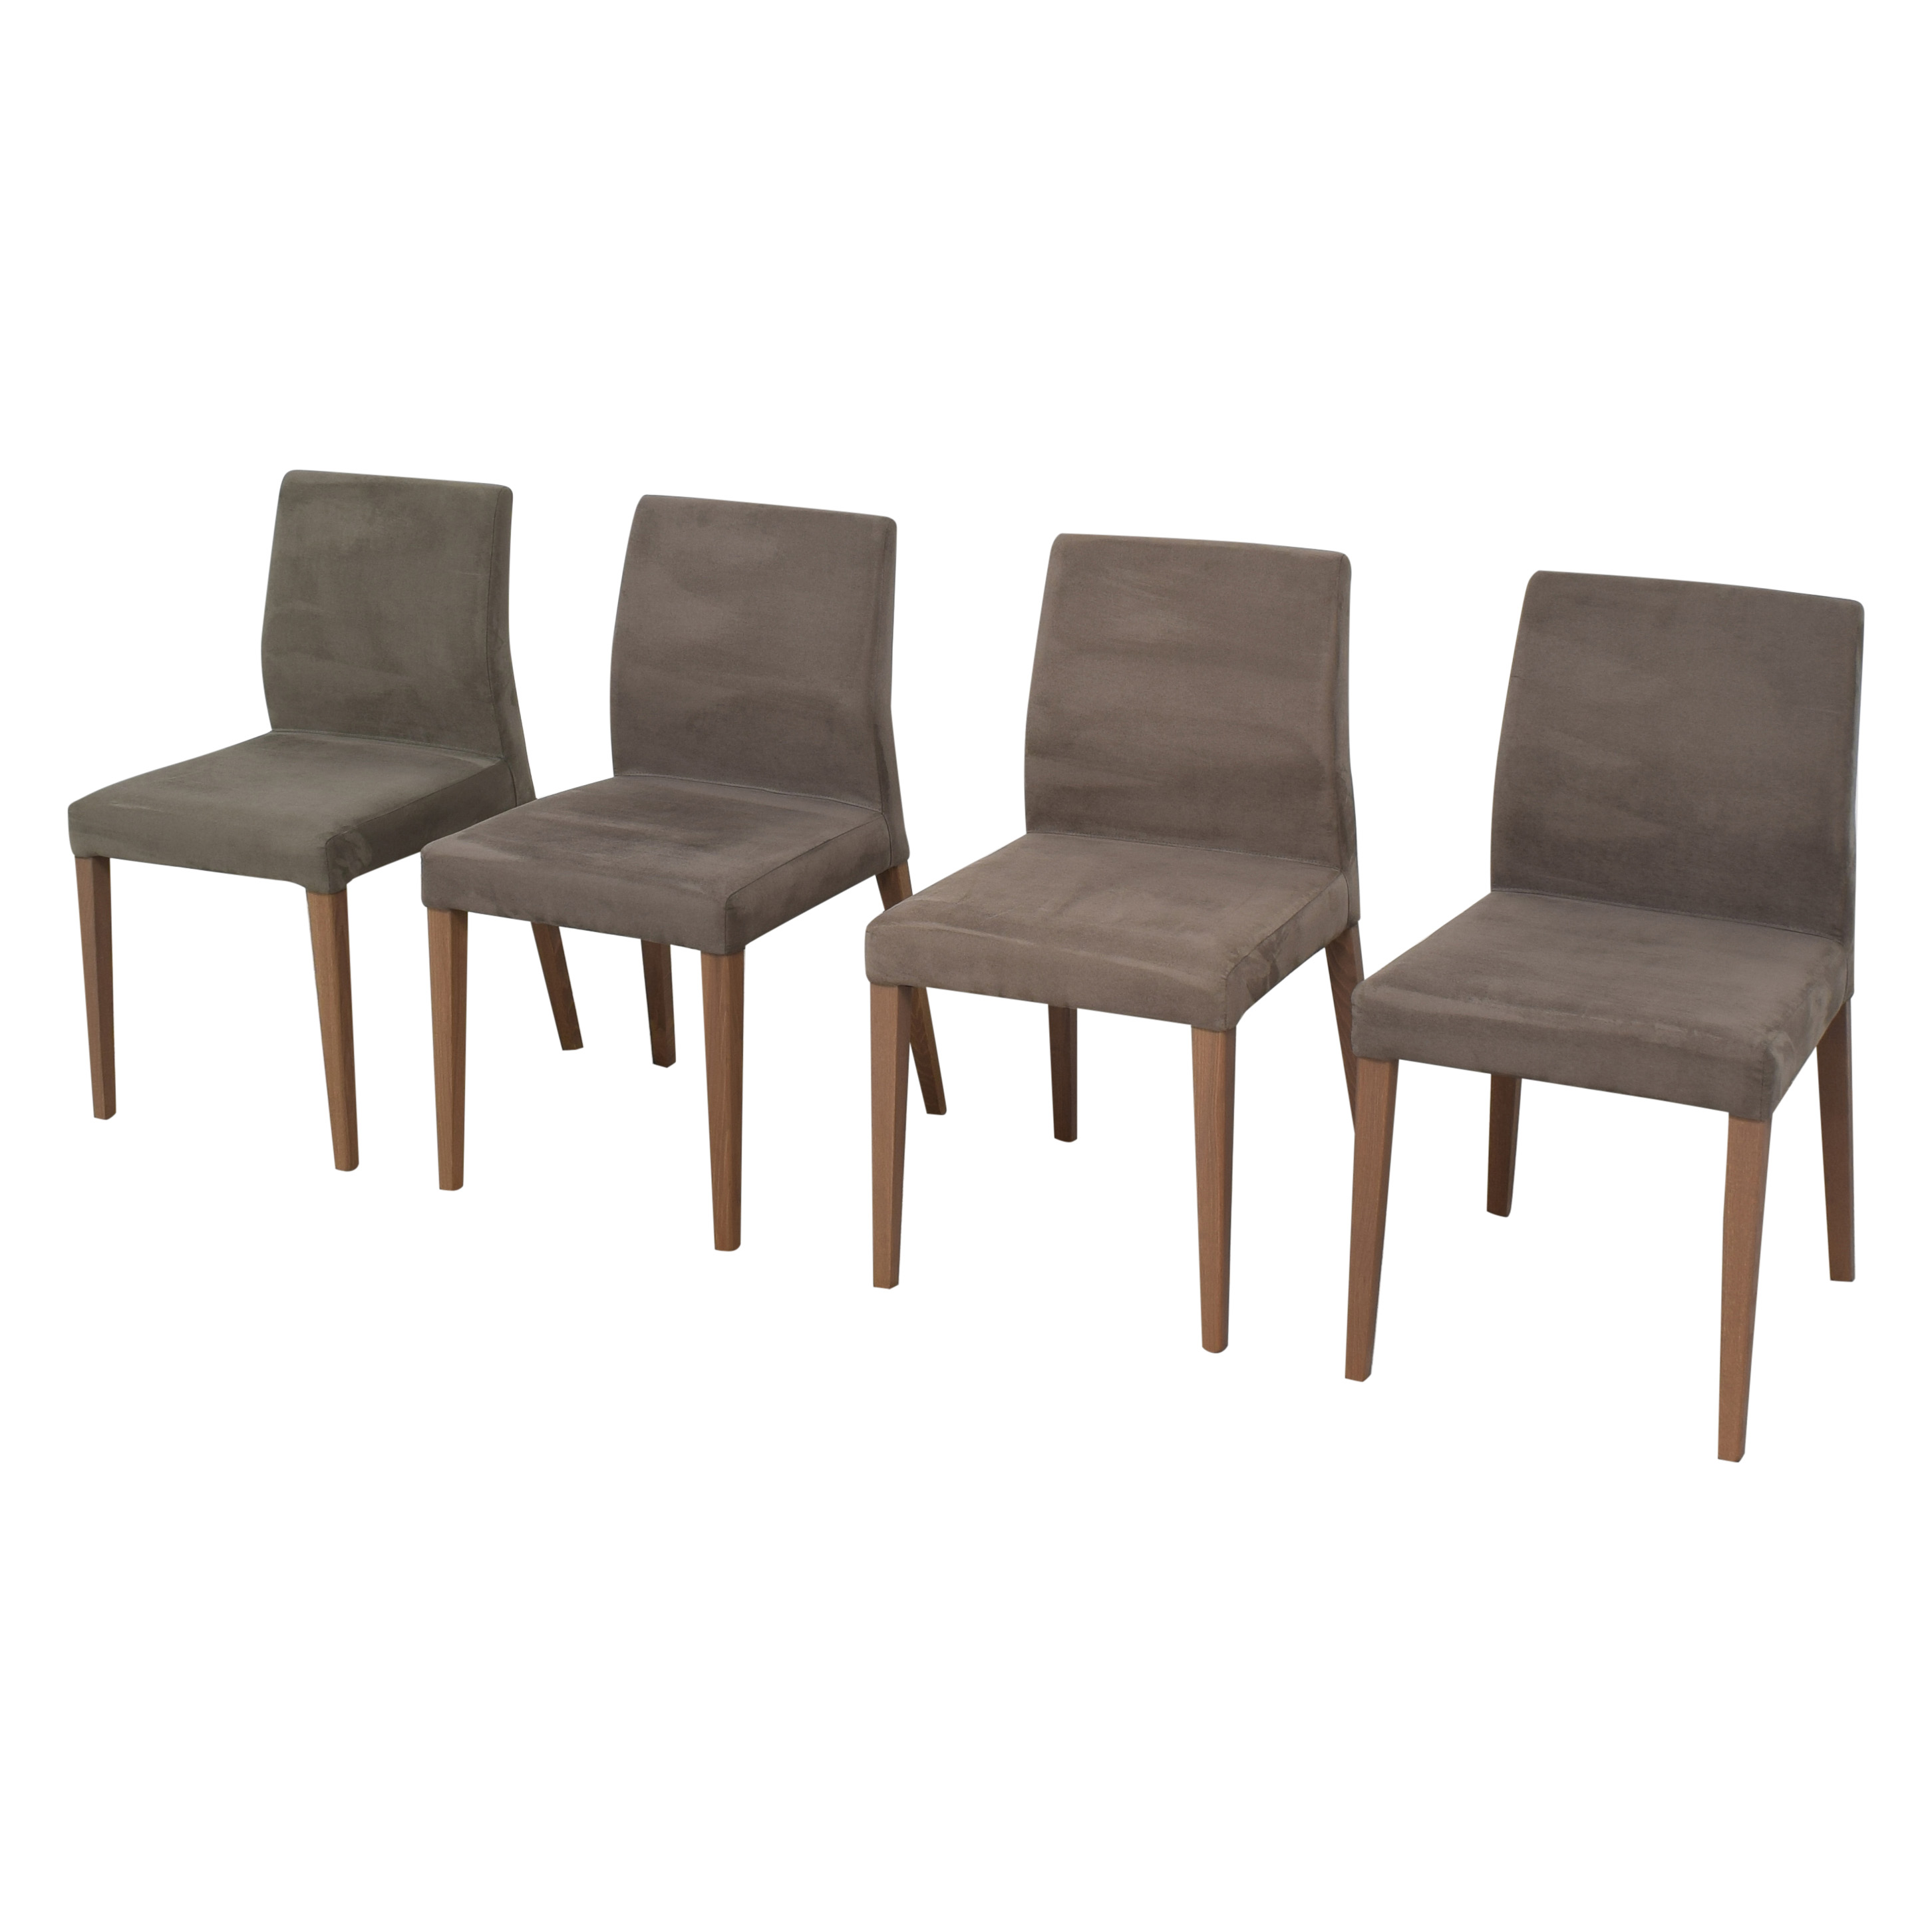 Crate & Barrel Crate & Barrel Lowe Upholstered Dining Chairs coupon